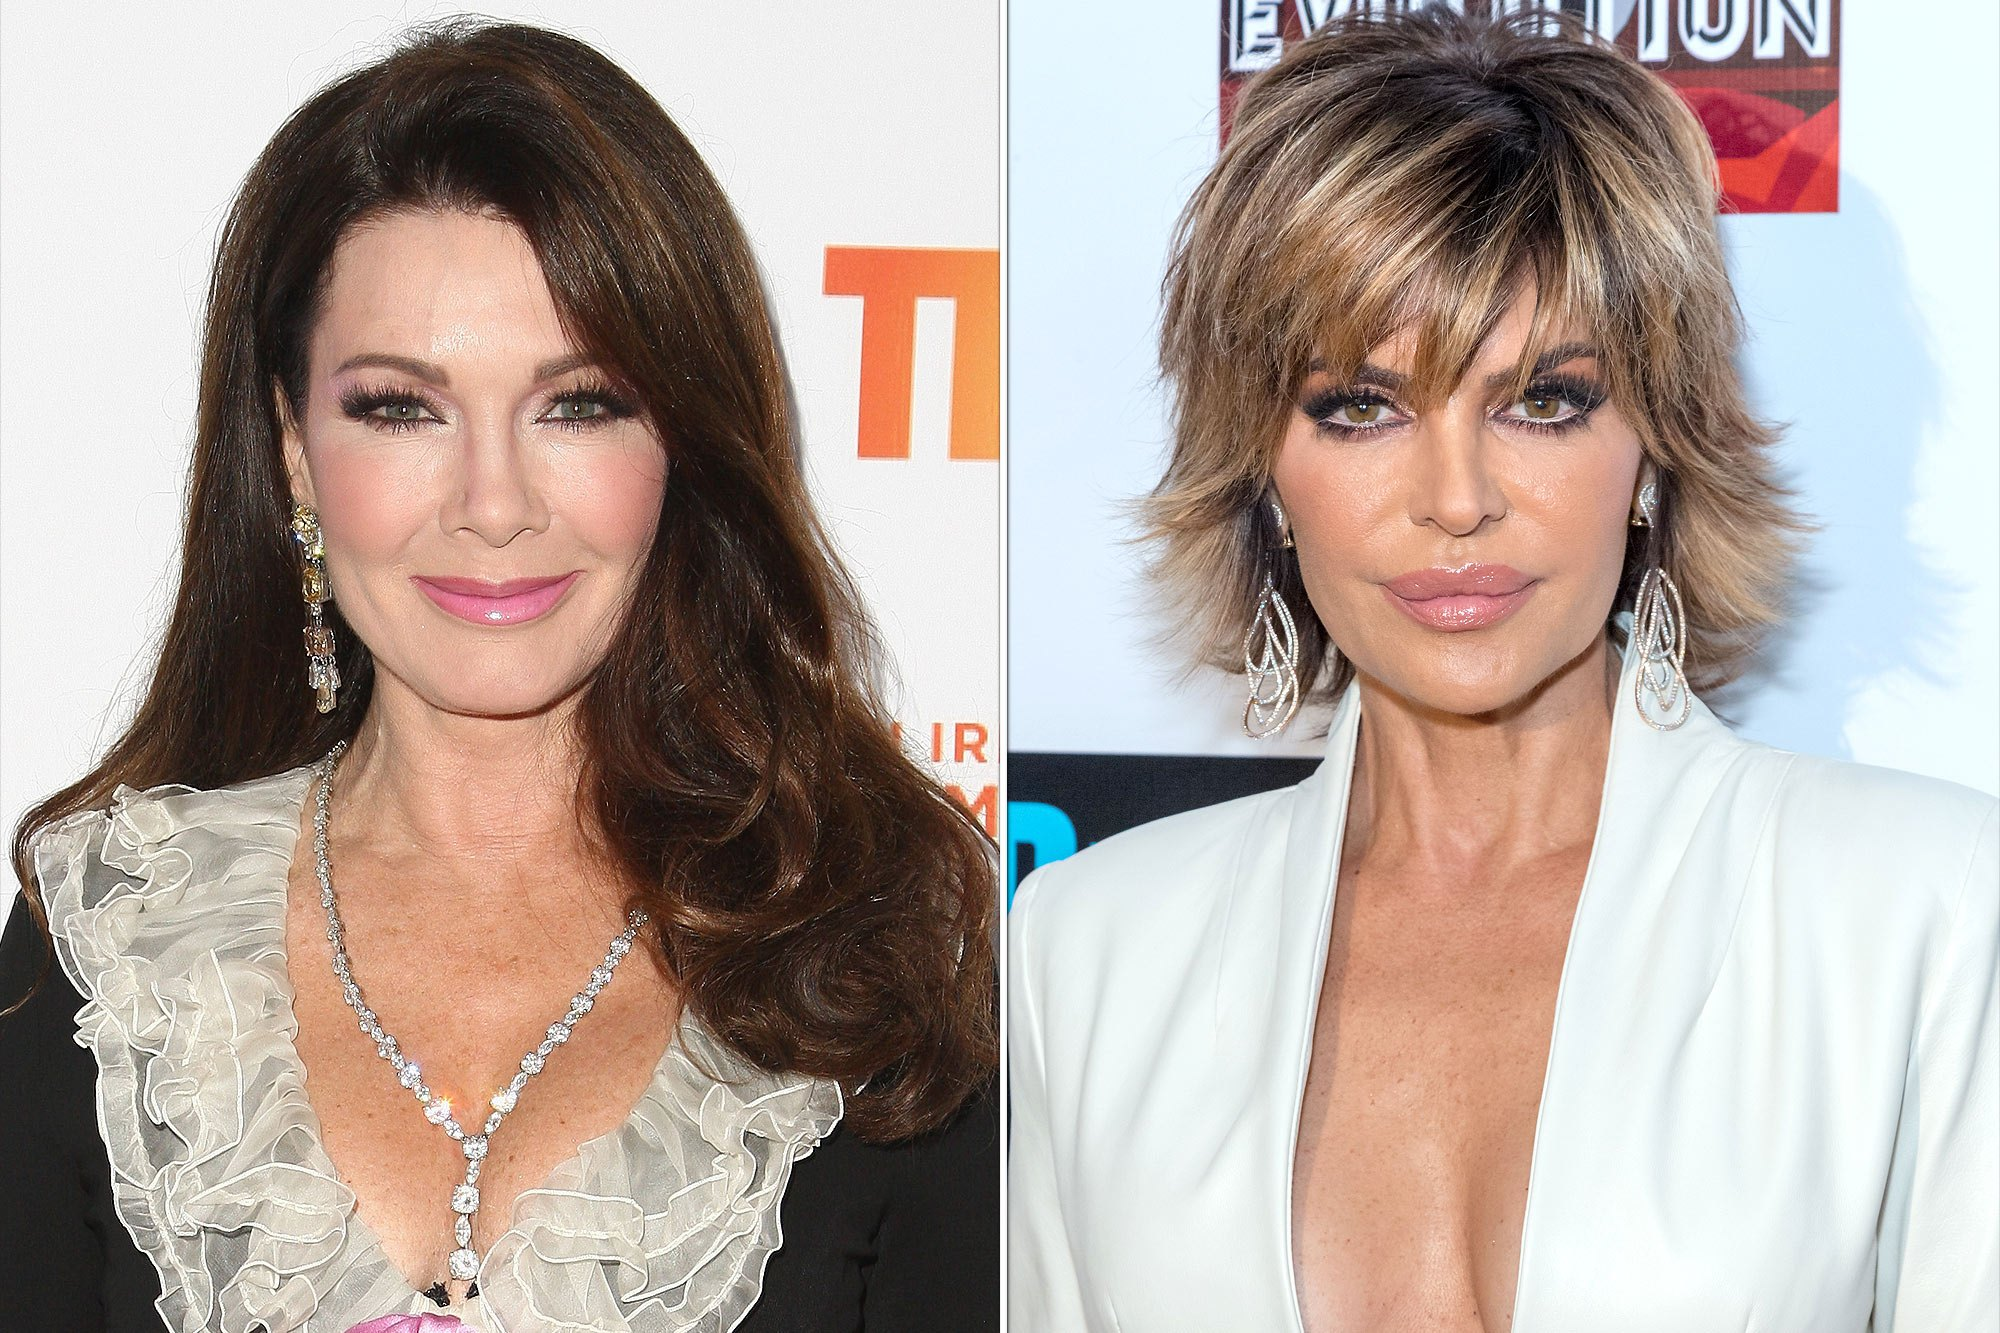 lisa-rinna-fires-back-after-fan-says-rhobh-wont-be-interesting-without-lisa-vanderpump